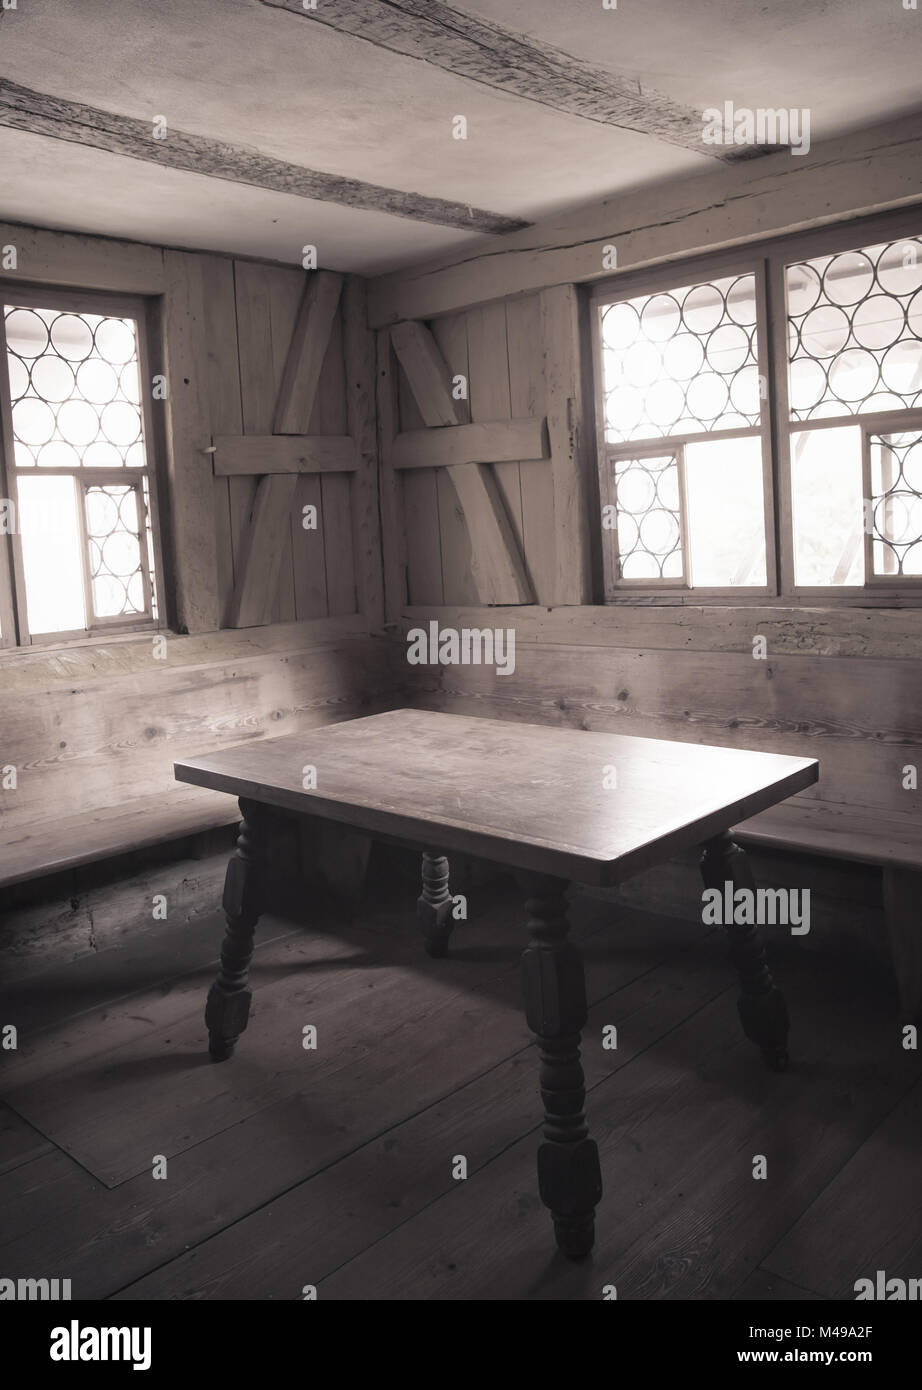 Vintage image of a wooden furnished dining room interior - Stock Image